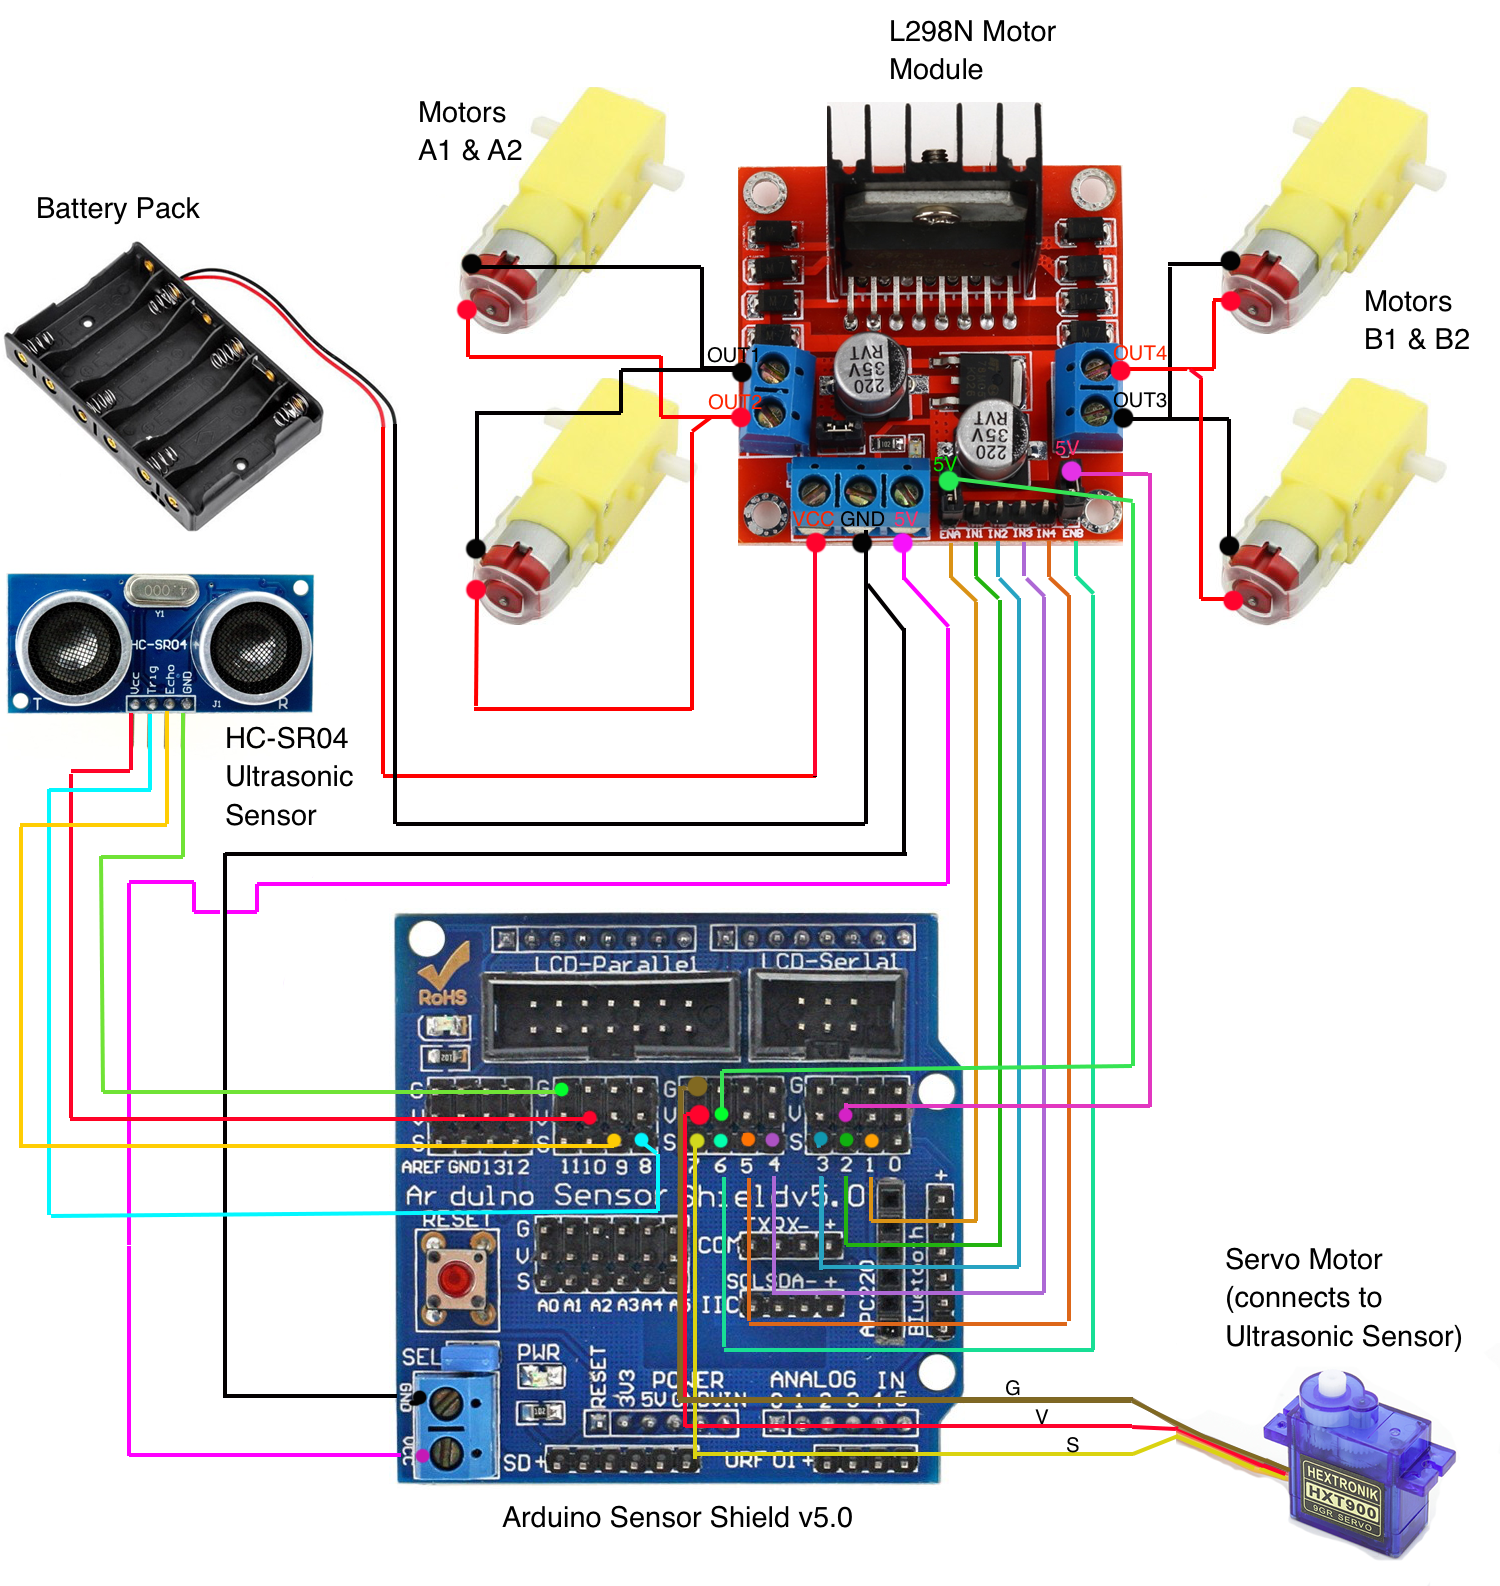 Building A 4wd Autonomous Car With Arduino on circuit wiring diagram